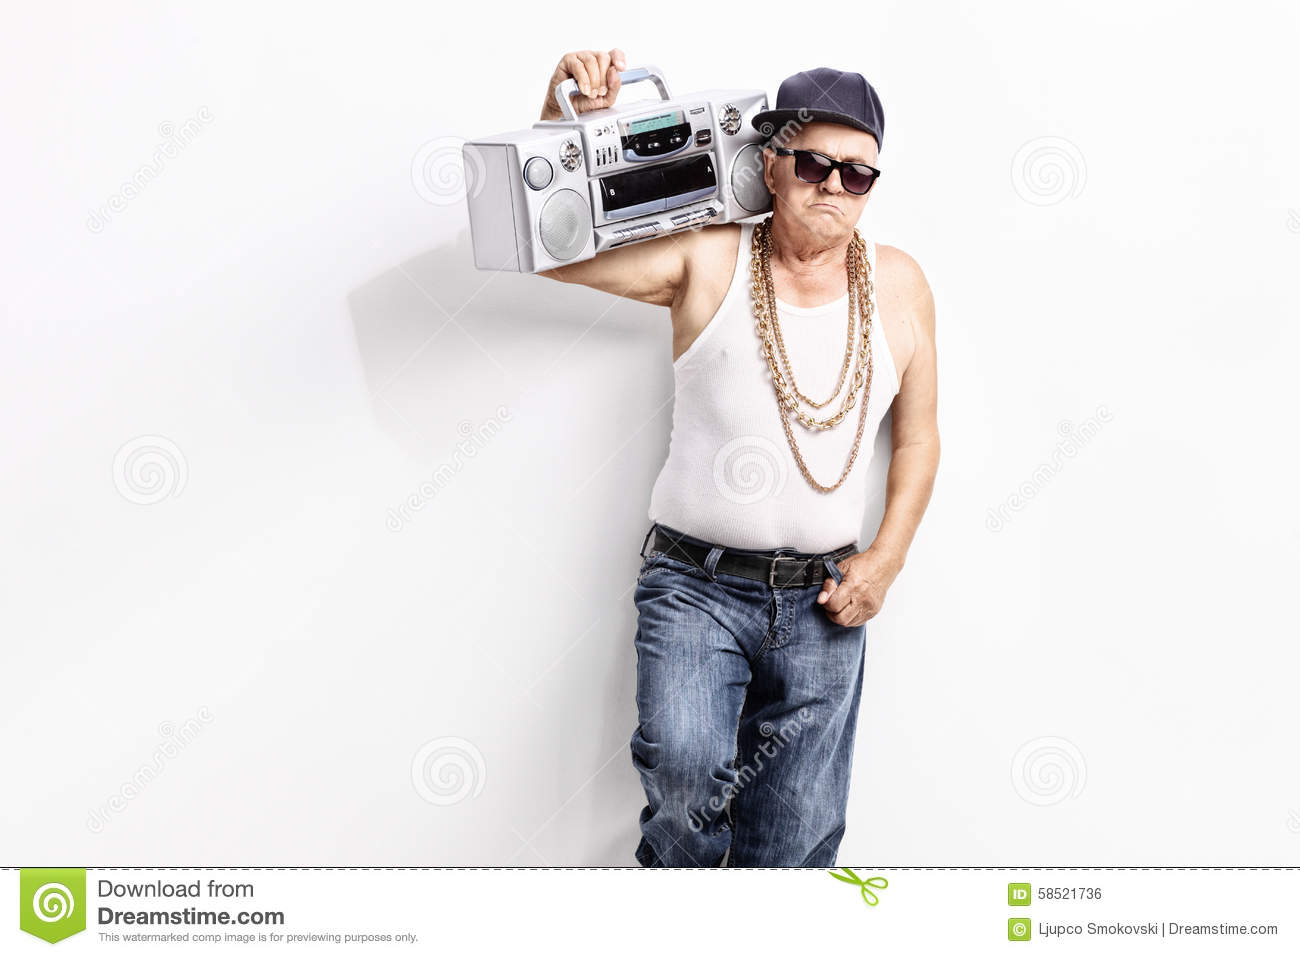 http://thumbs.dreamstime.com/z/senior-rapper-carrying-ghetto-blaster-man-hip-hop-outfit-over-his-shoulder-looking-camera-58521736.jpg